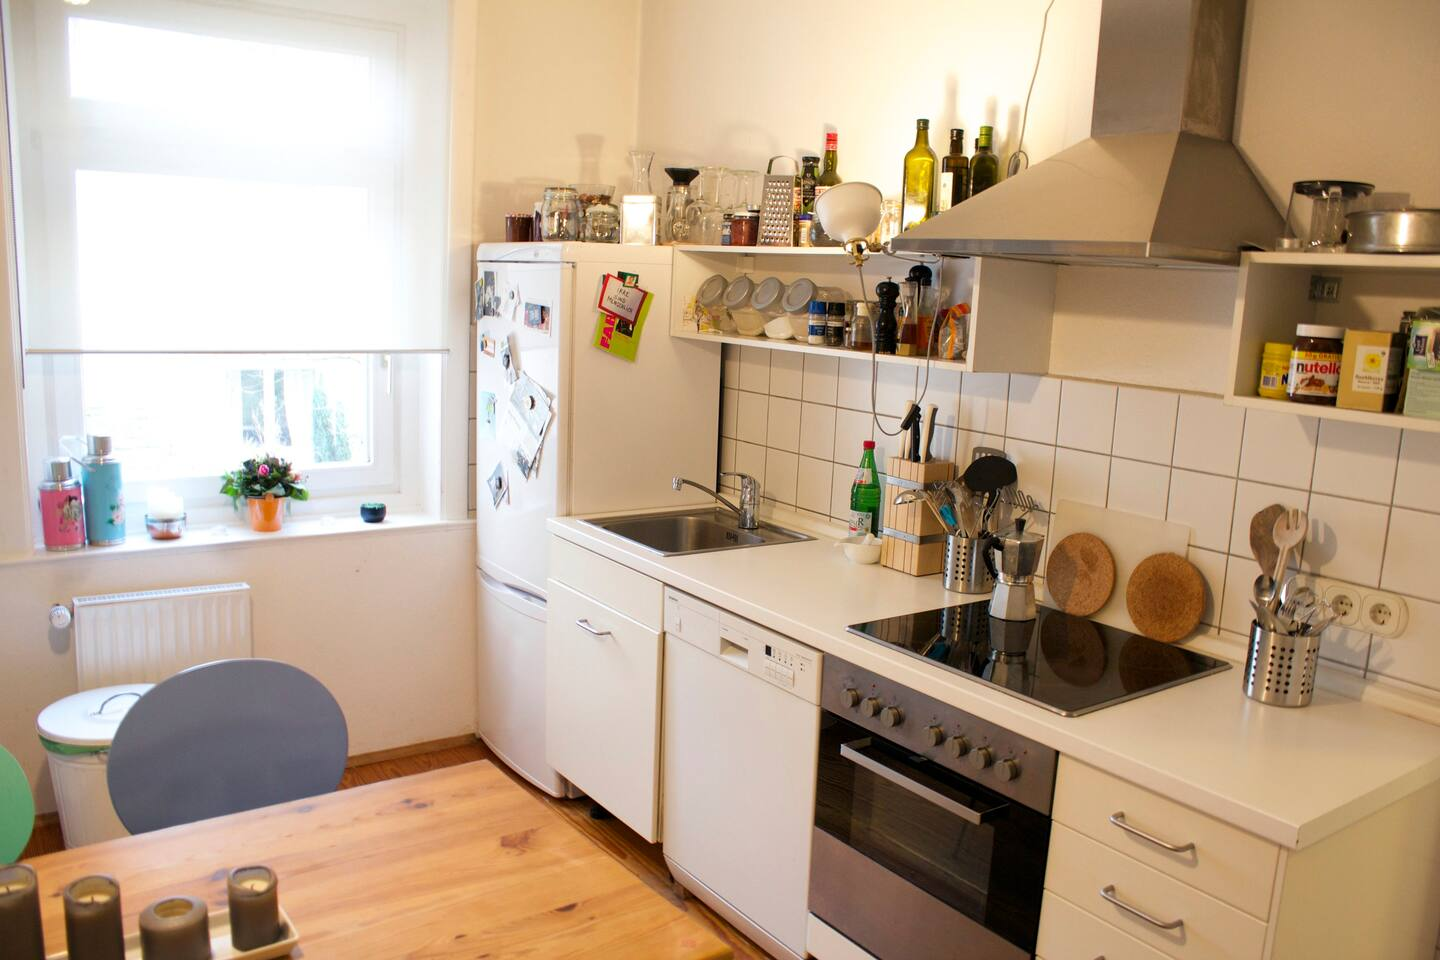 cozy&calm - full equipped - uke2go - appartements à louer à hambourg